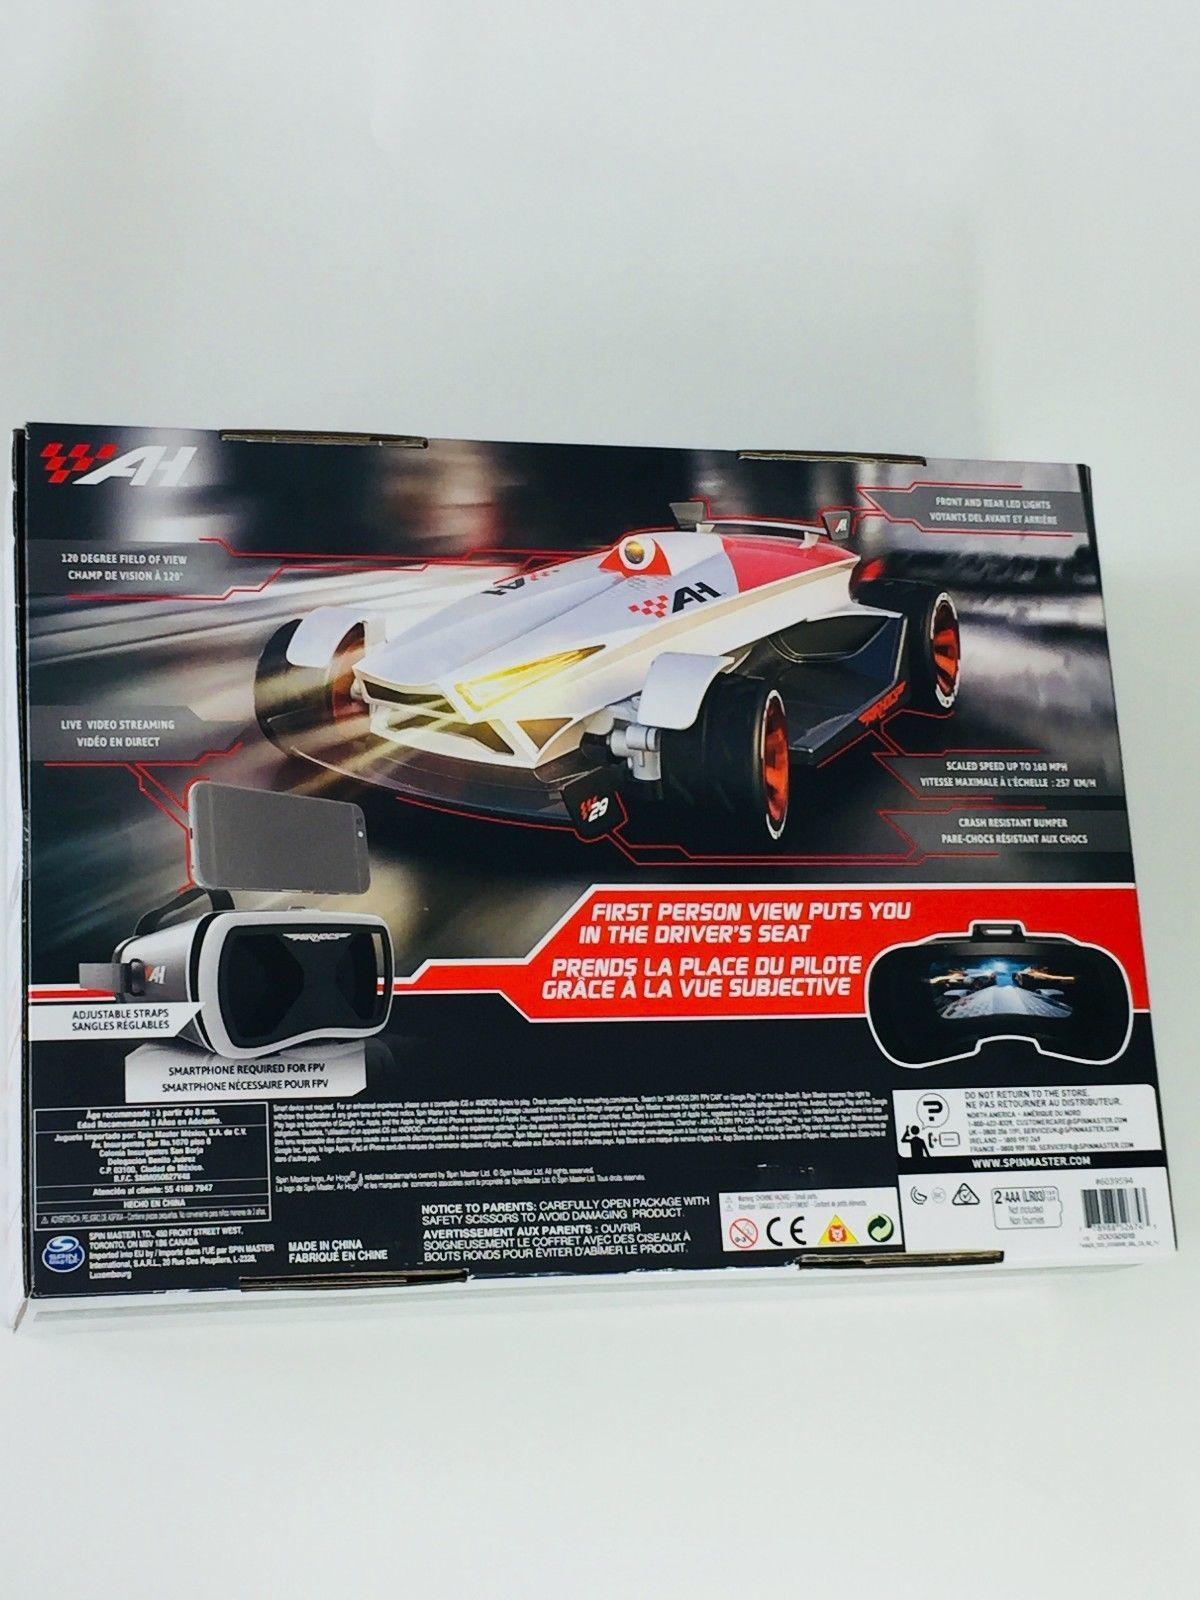 Air Hogs Fpv High Speed Race Car W Headset And 27 Similar Items